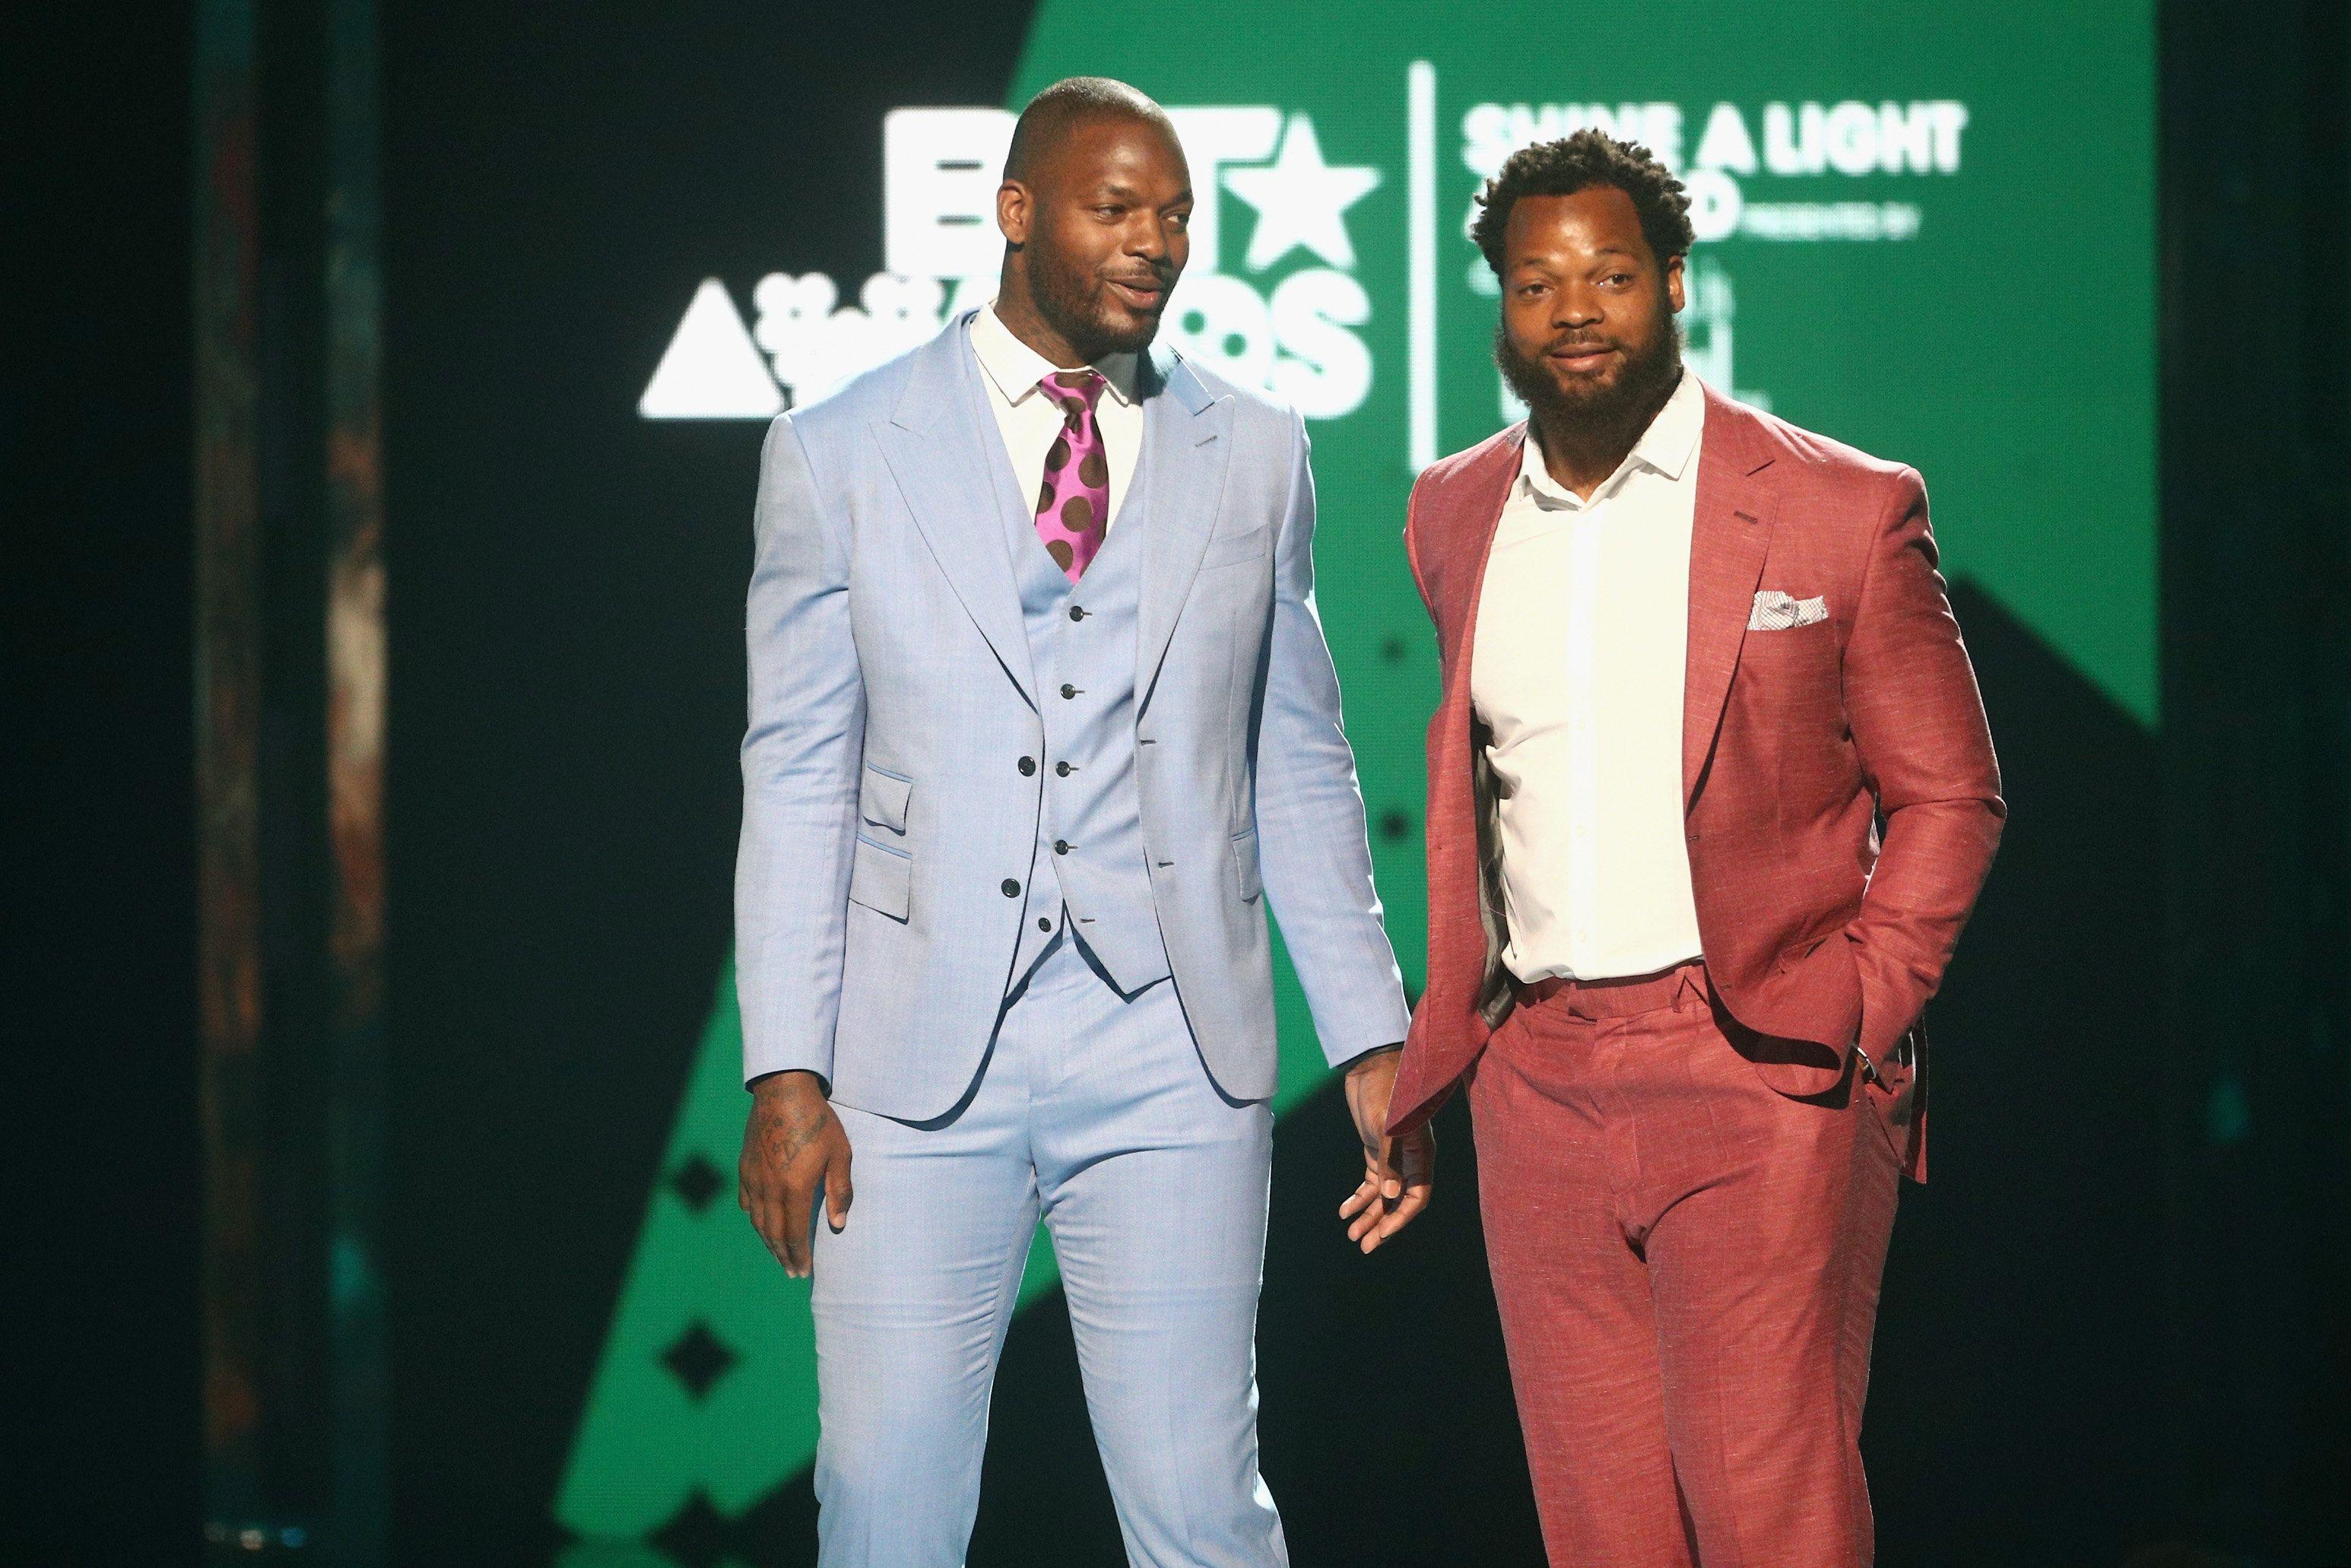 Martellus Bennett: I'd love to play with my brother, but I've found my life's work